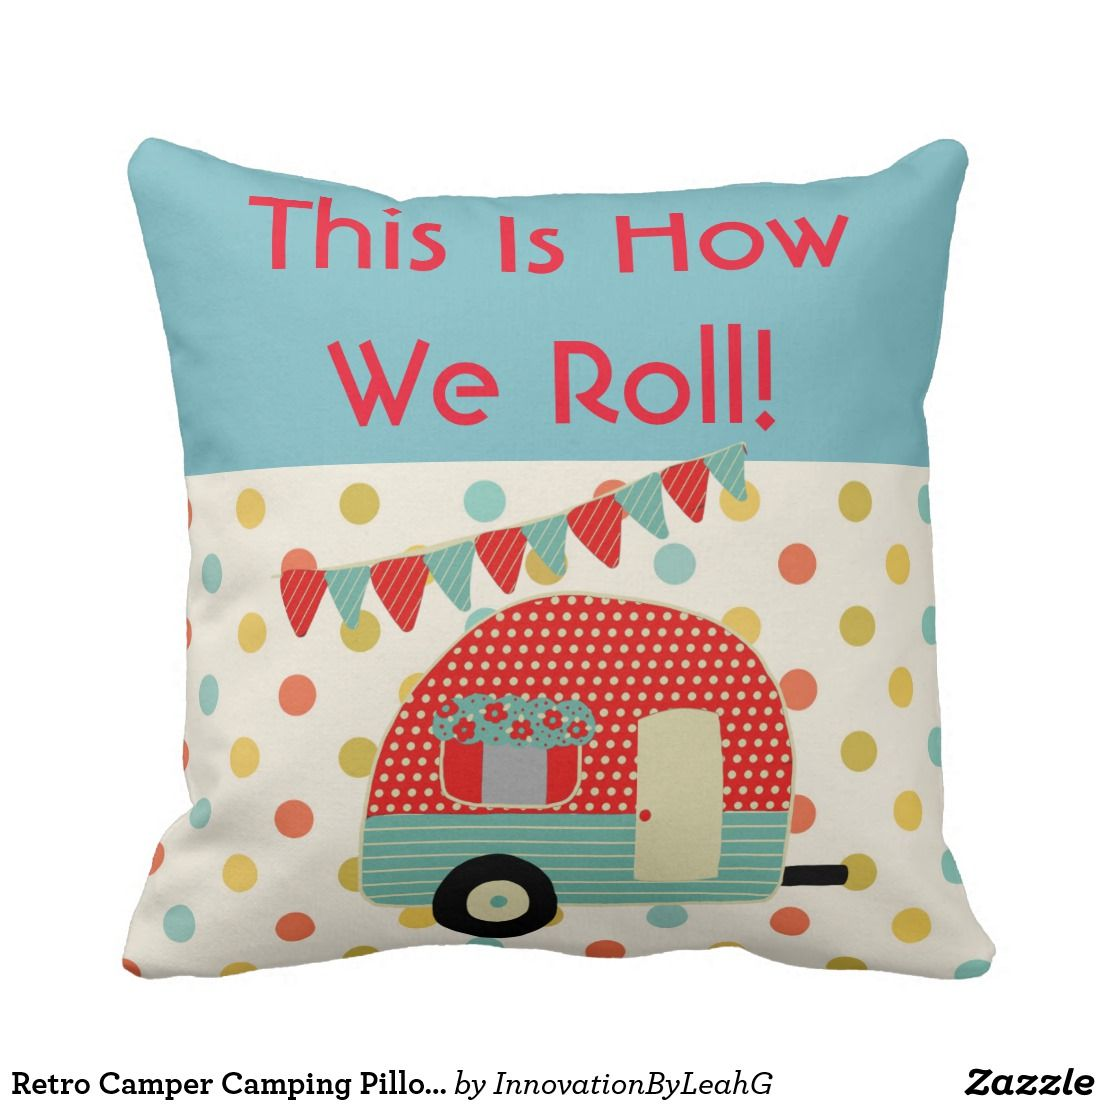 Pillow Ideas For Camping: Retro Camper Camping Pillow   This Is How We Roll   Gift Ideas    ,